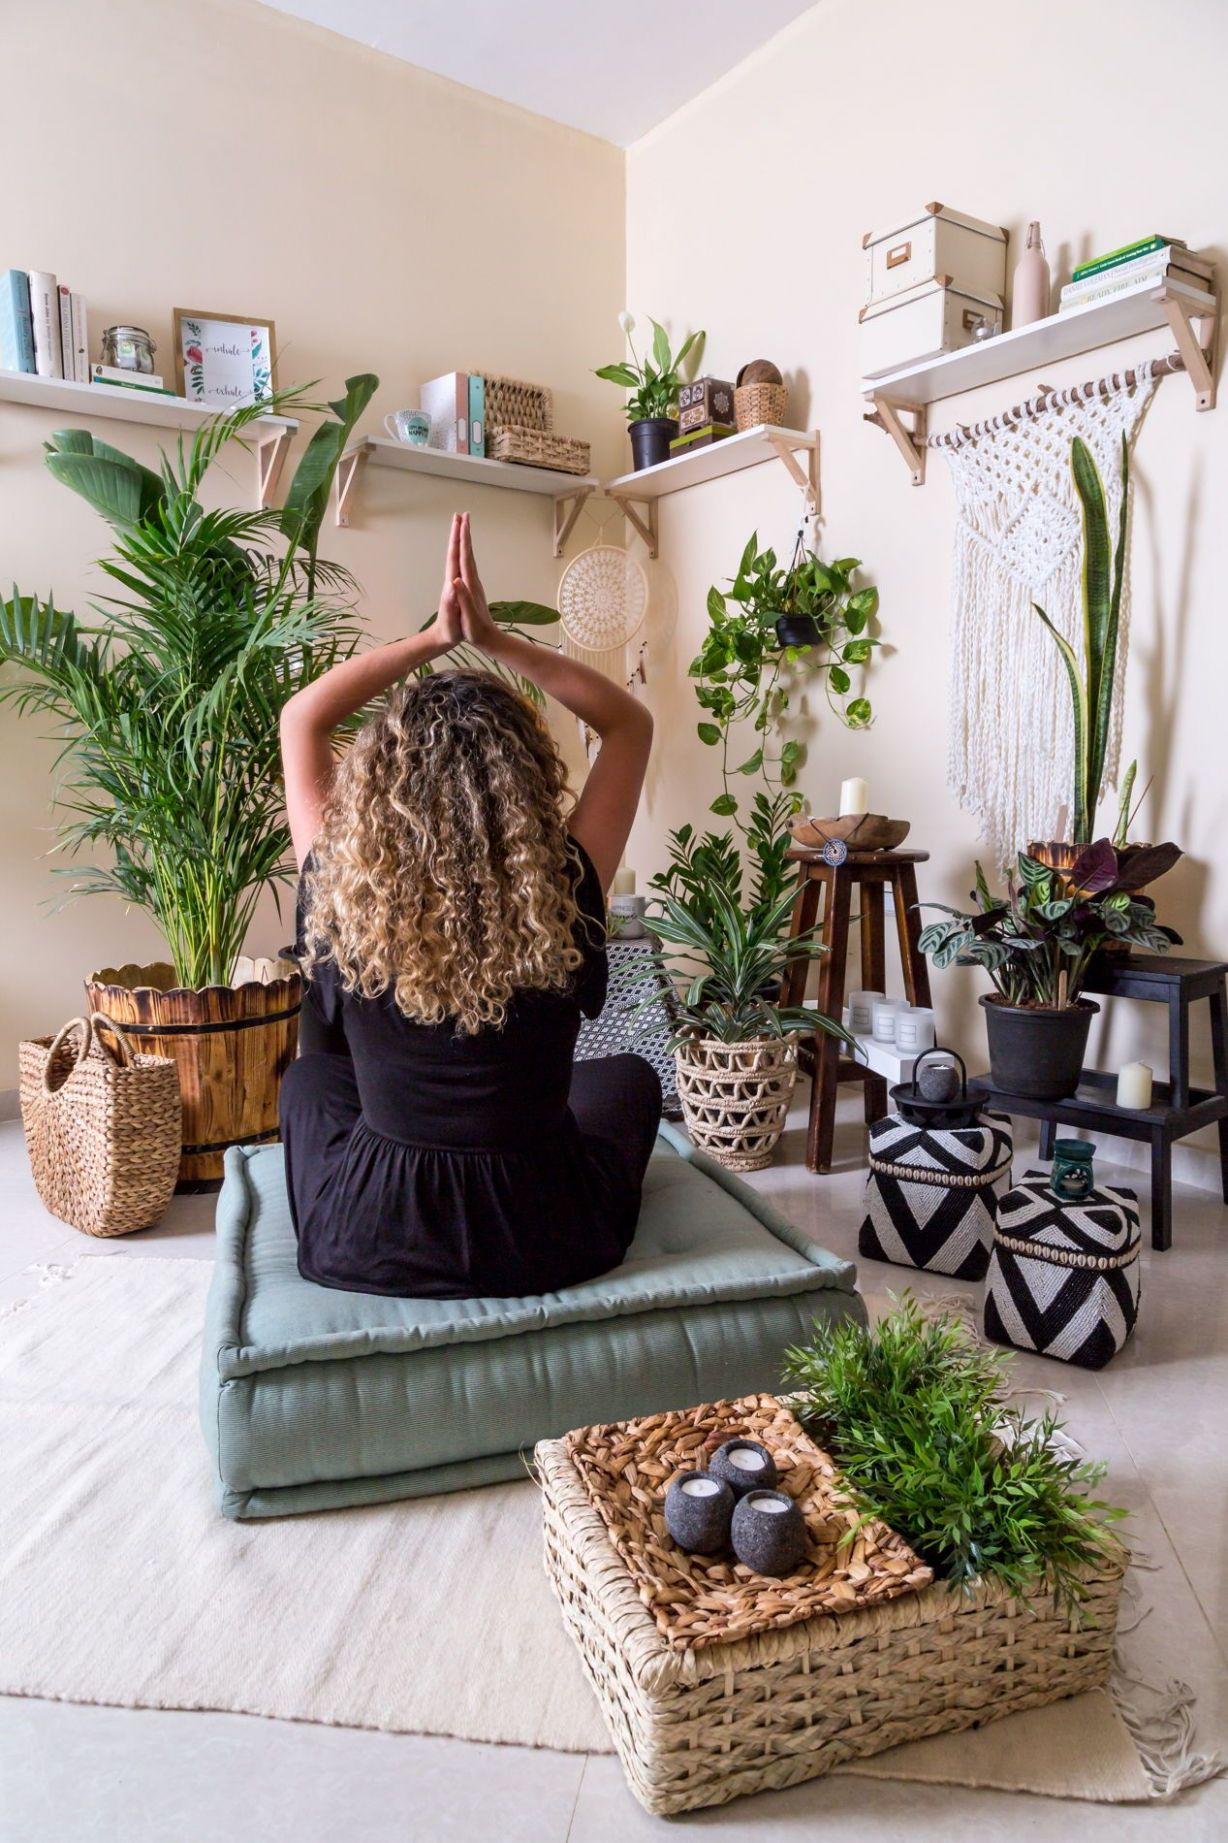 12 Budget-Friendly Meditation Room Ideas For Small Spaces (With ..